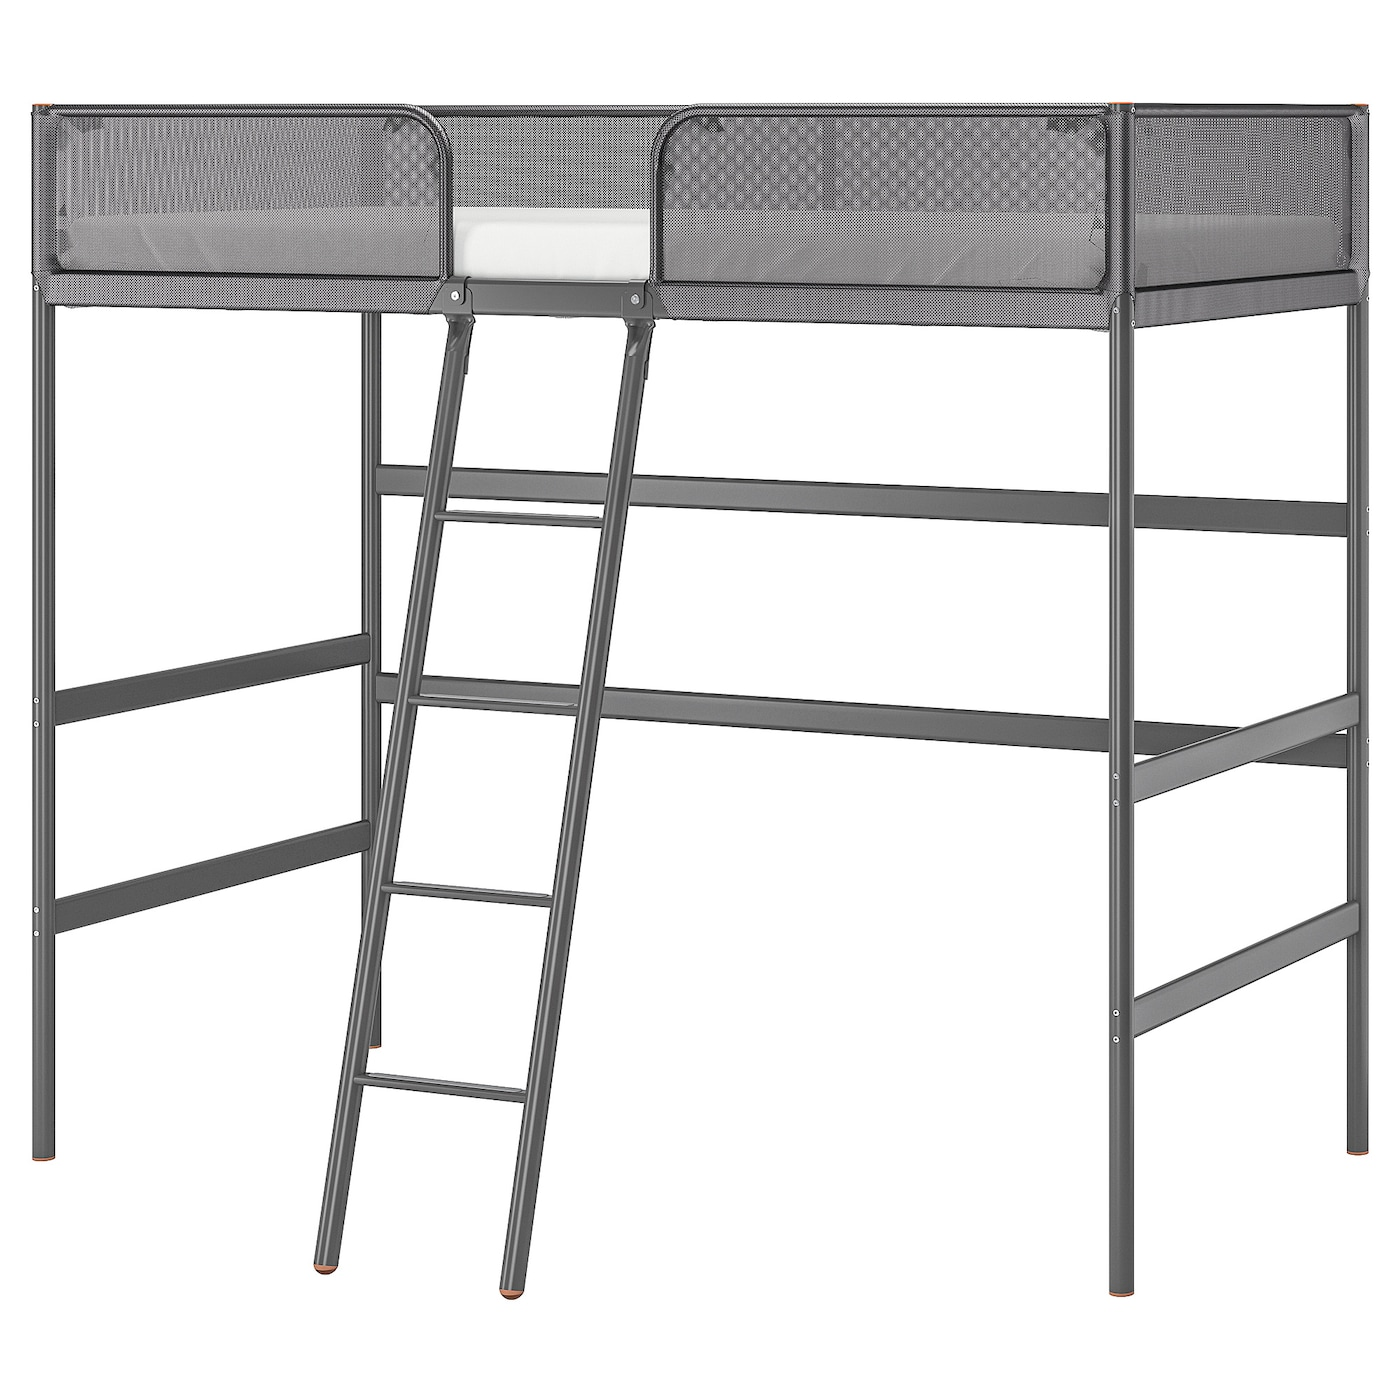 tuffing loft bed frame dark grey 90 x 200 cm ikea. Black Bedroom Furniture Sets. Home Design Ideas